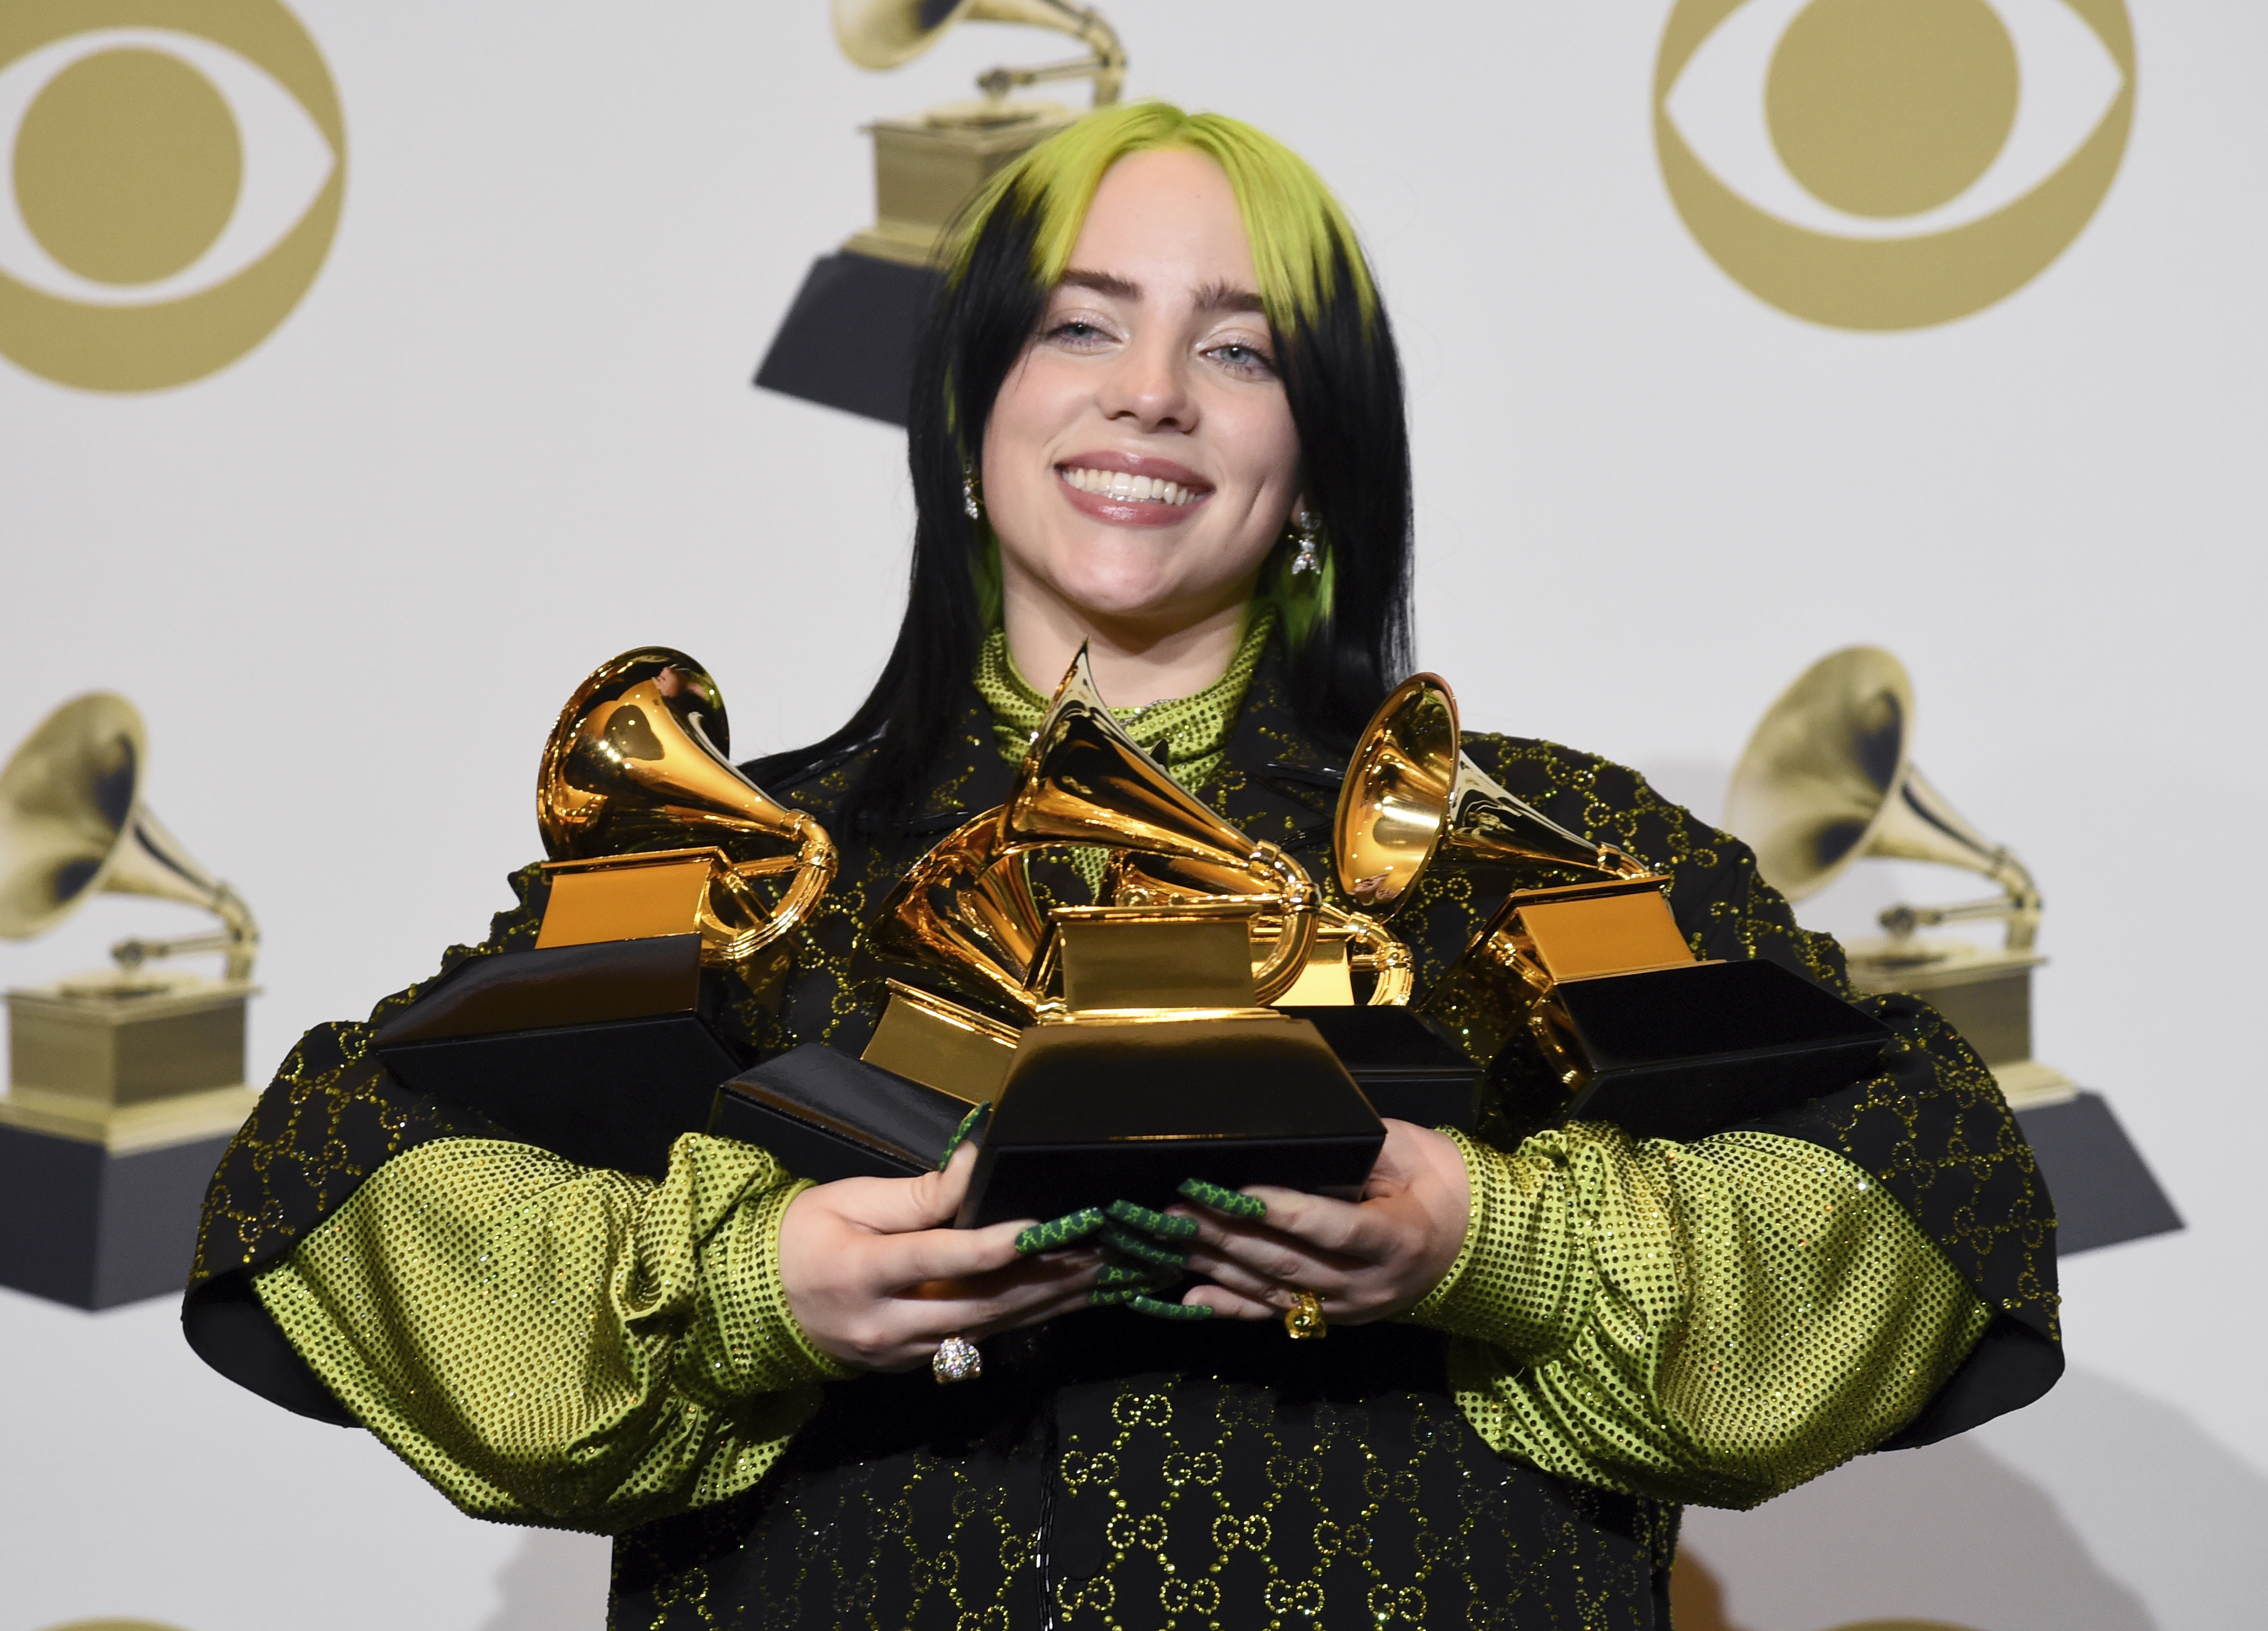 Grammy Awards Changes Rules For Best New Artist Category